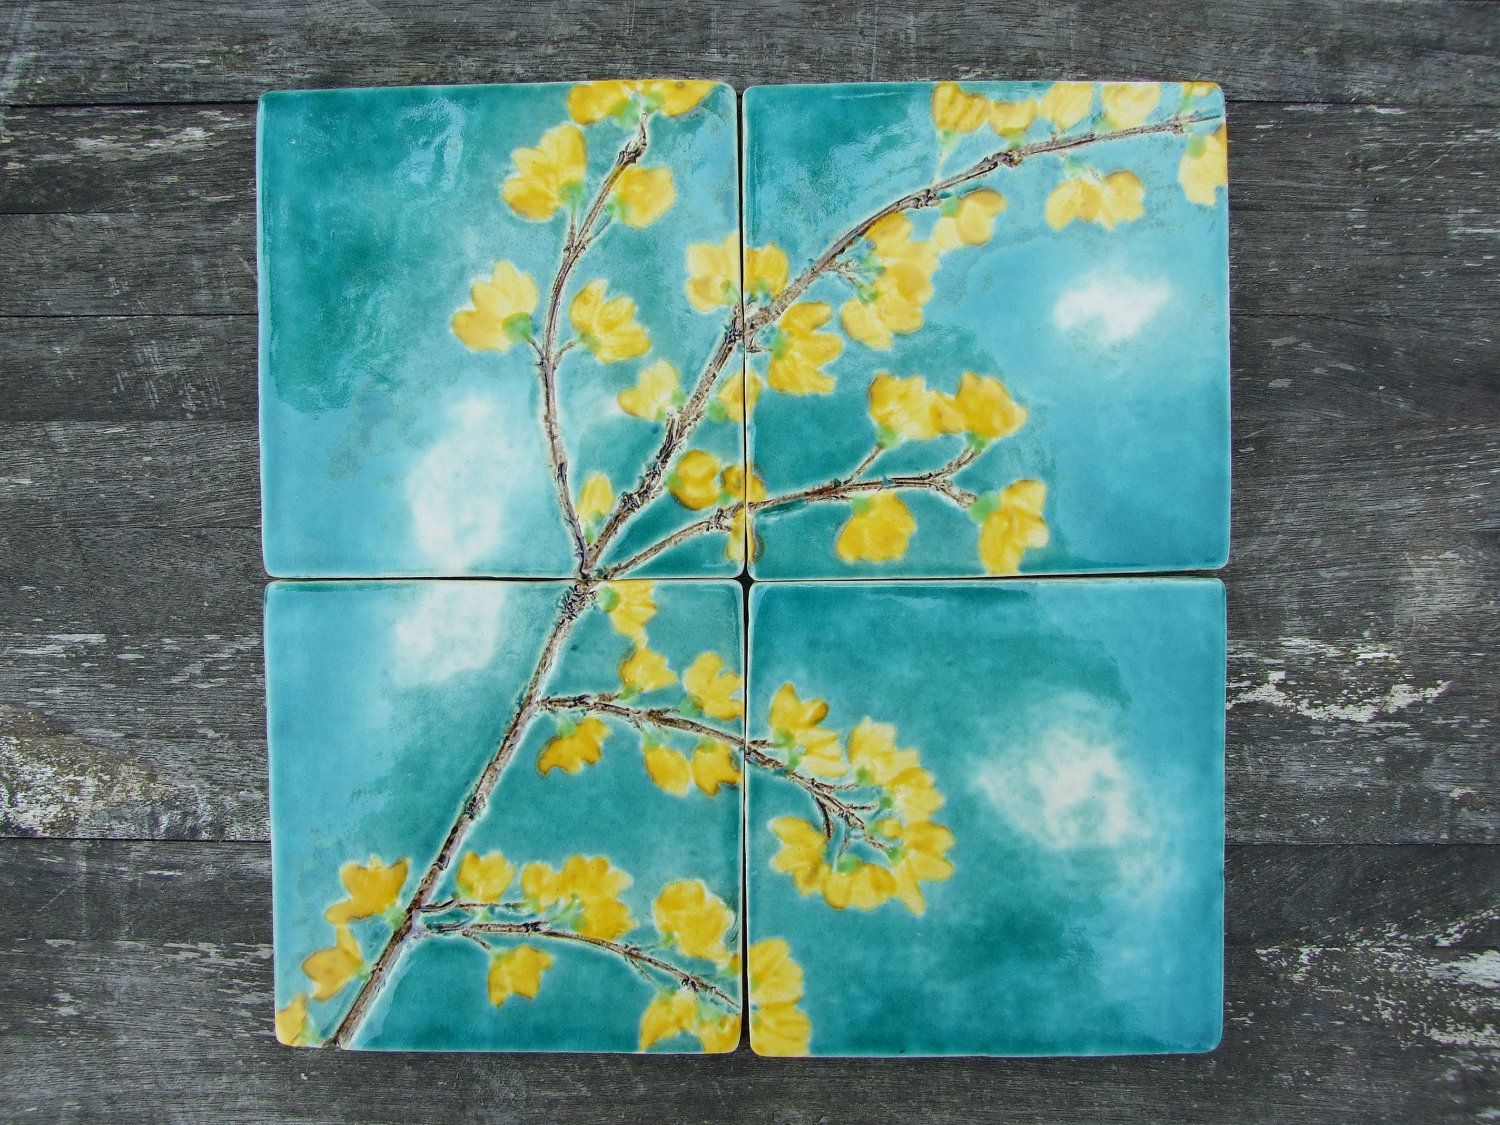 4 ceramic tiles yellow forsythia blossoms turquoise crackle glaze 4 ceramic tiles yellow forsythia blossoms turquoise crackle glaze kitchen bathroom restroom made to order dailygadgetfo Gallery